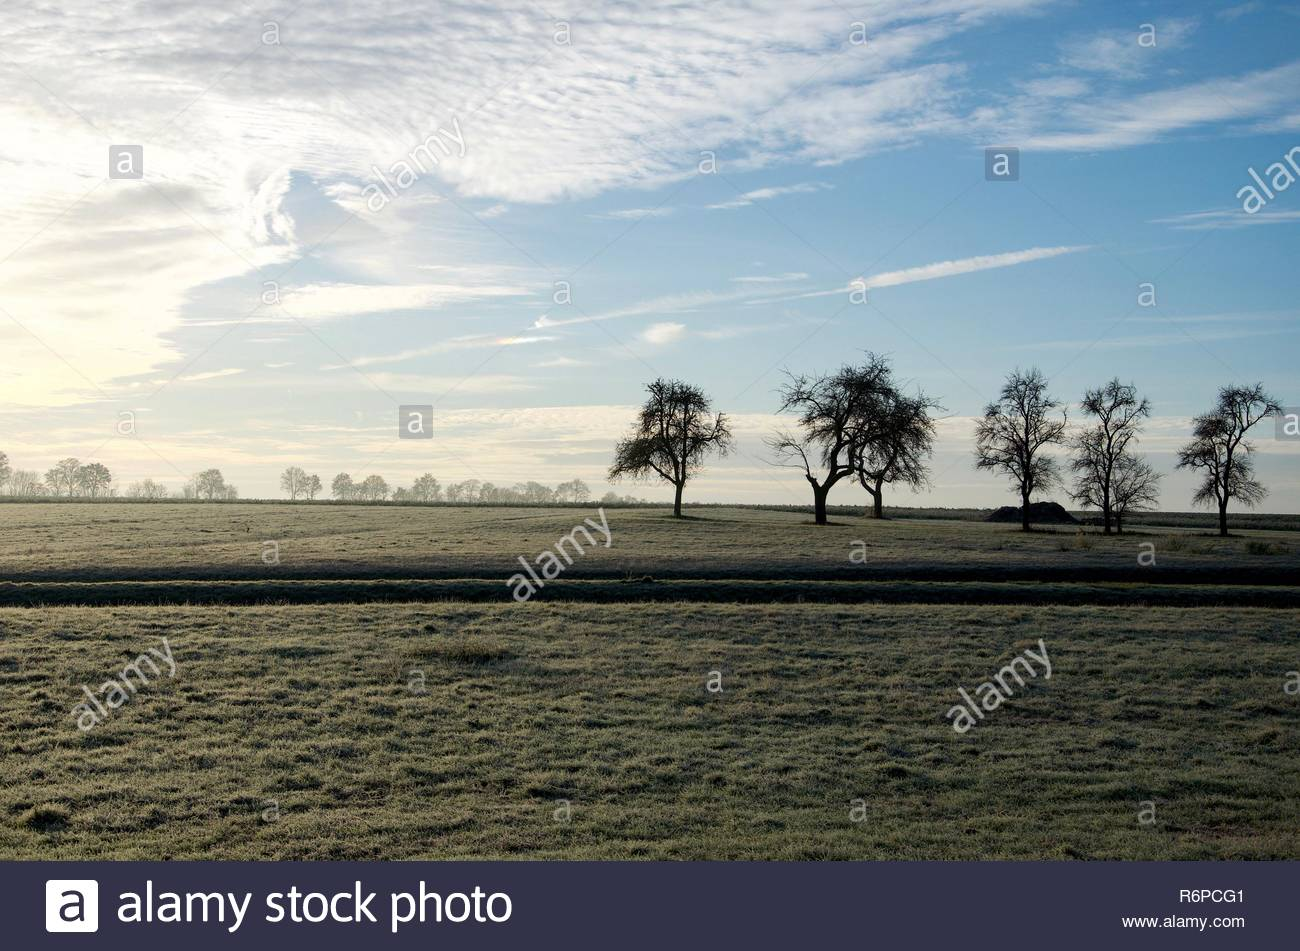 A frosty morning after sunrise in the countryside of Bavaria in Germany, rime on the field, silhouette of trees on horizon - Stock Image